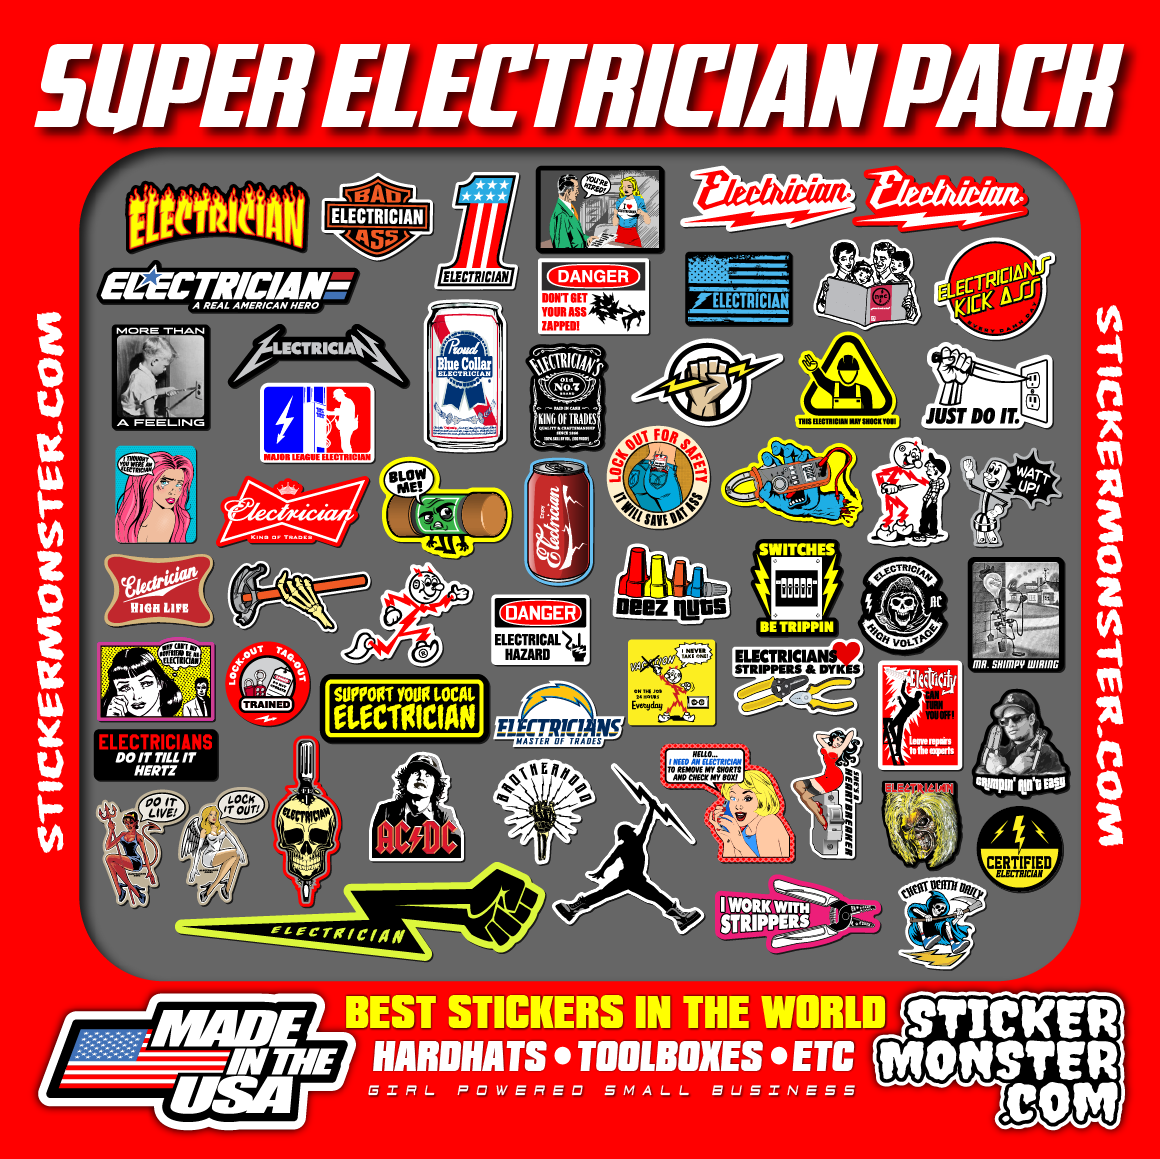 Home Decoration - NEW ELECTRICIAN (55+) Hard Hat Stickers HardHat Decals, Lineman Reddy IBEW